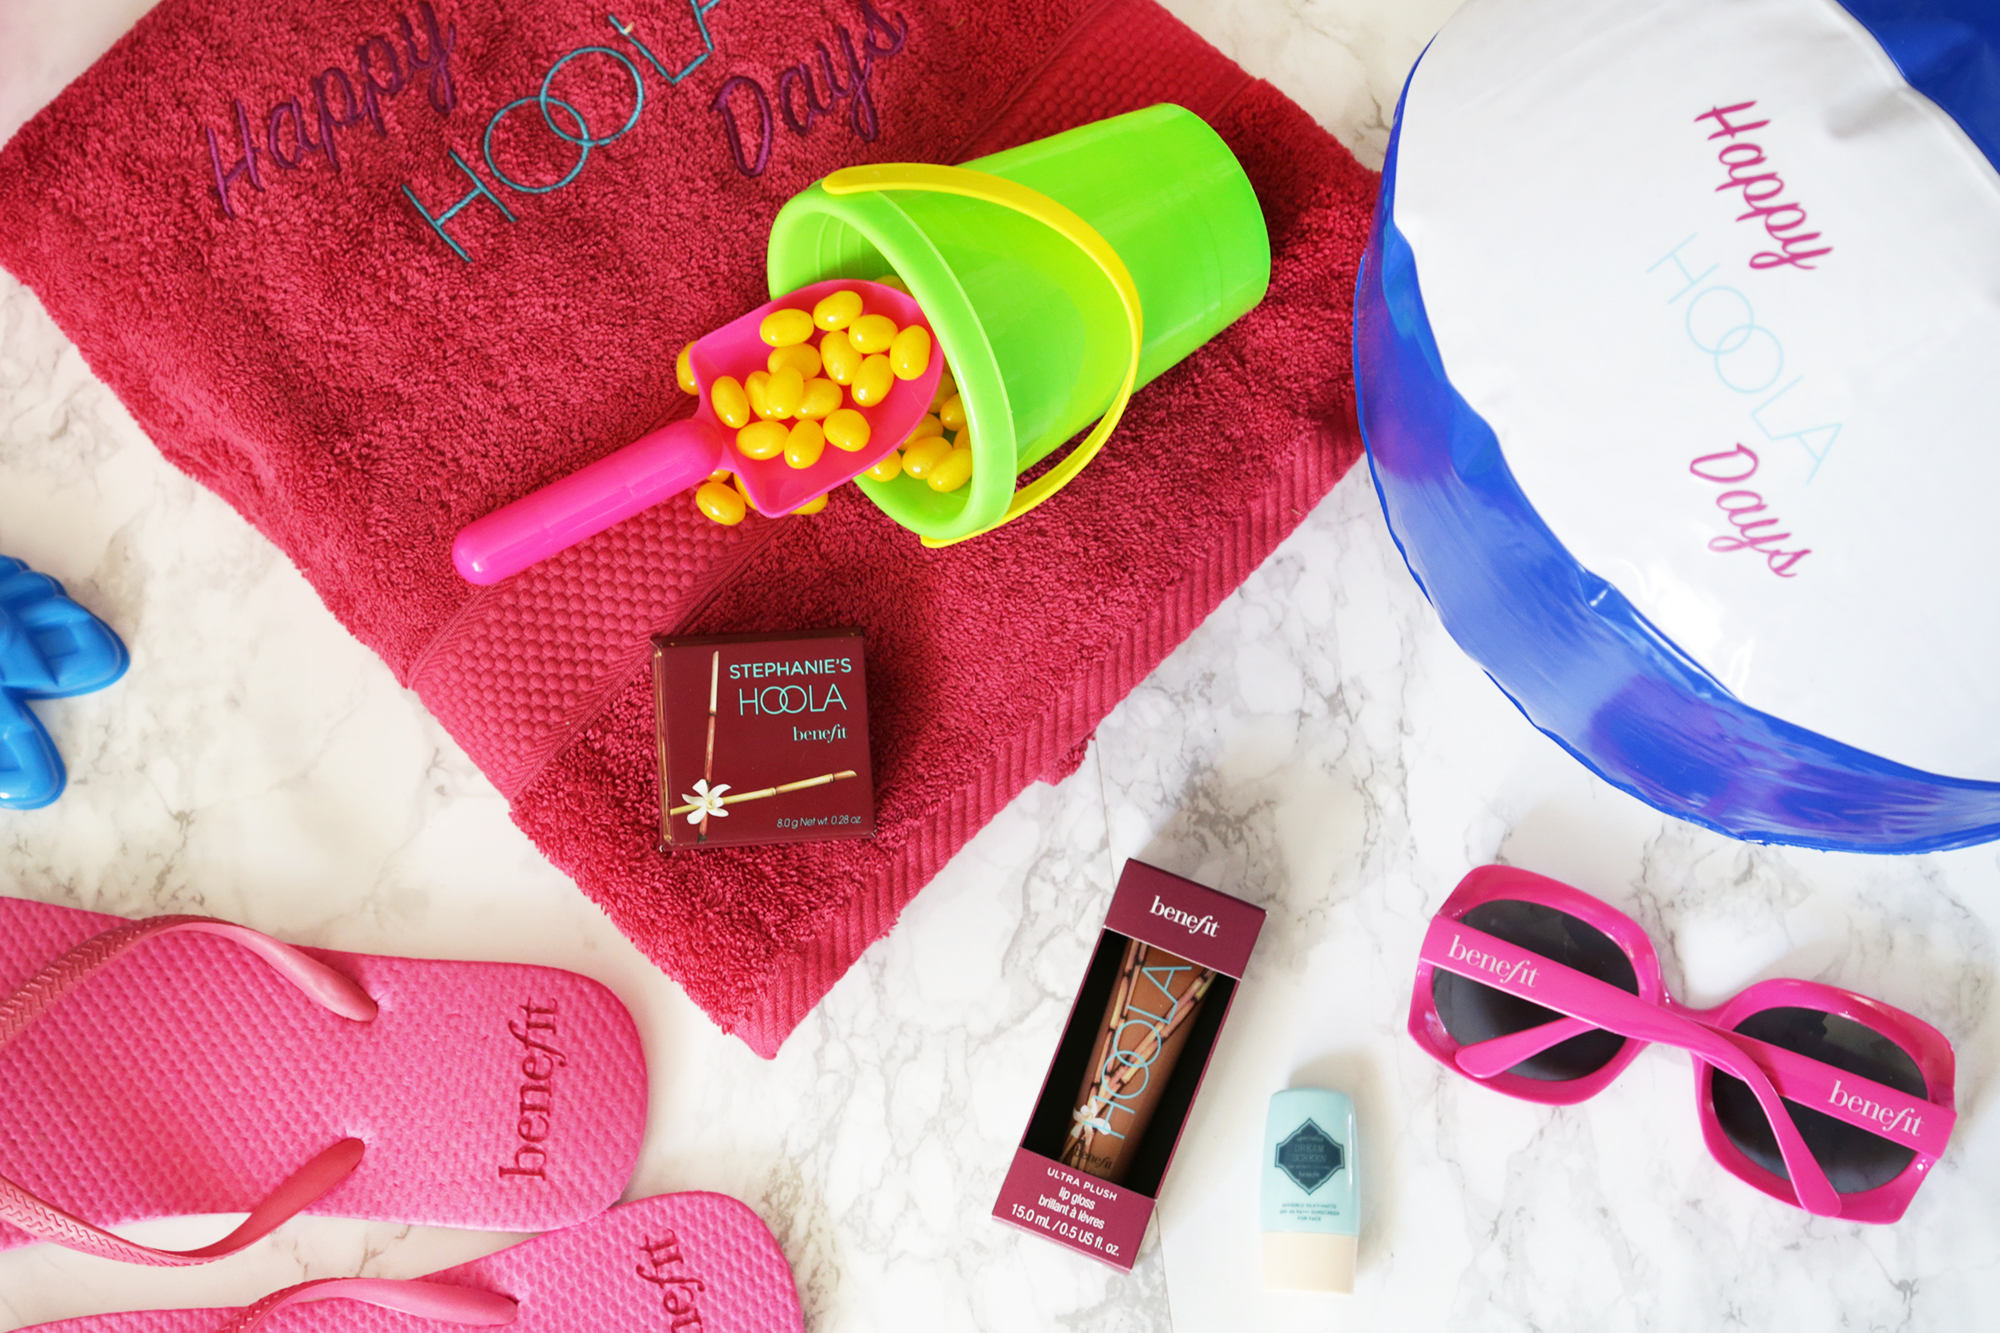 Benefit Hoola Days Haul Makeup Beauty